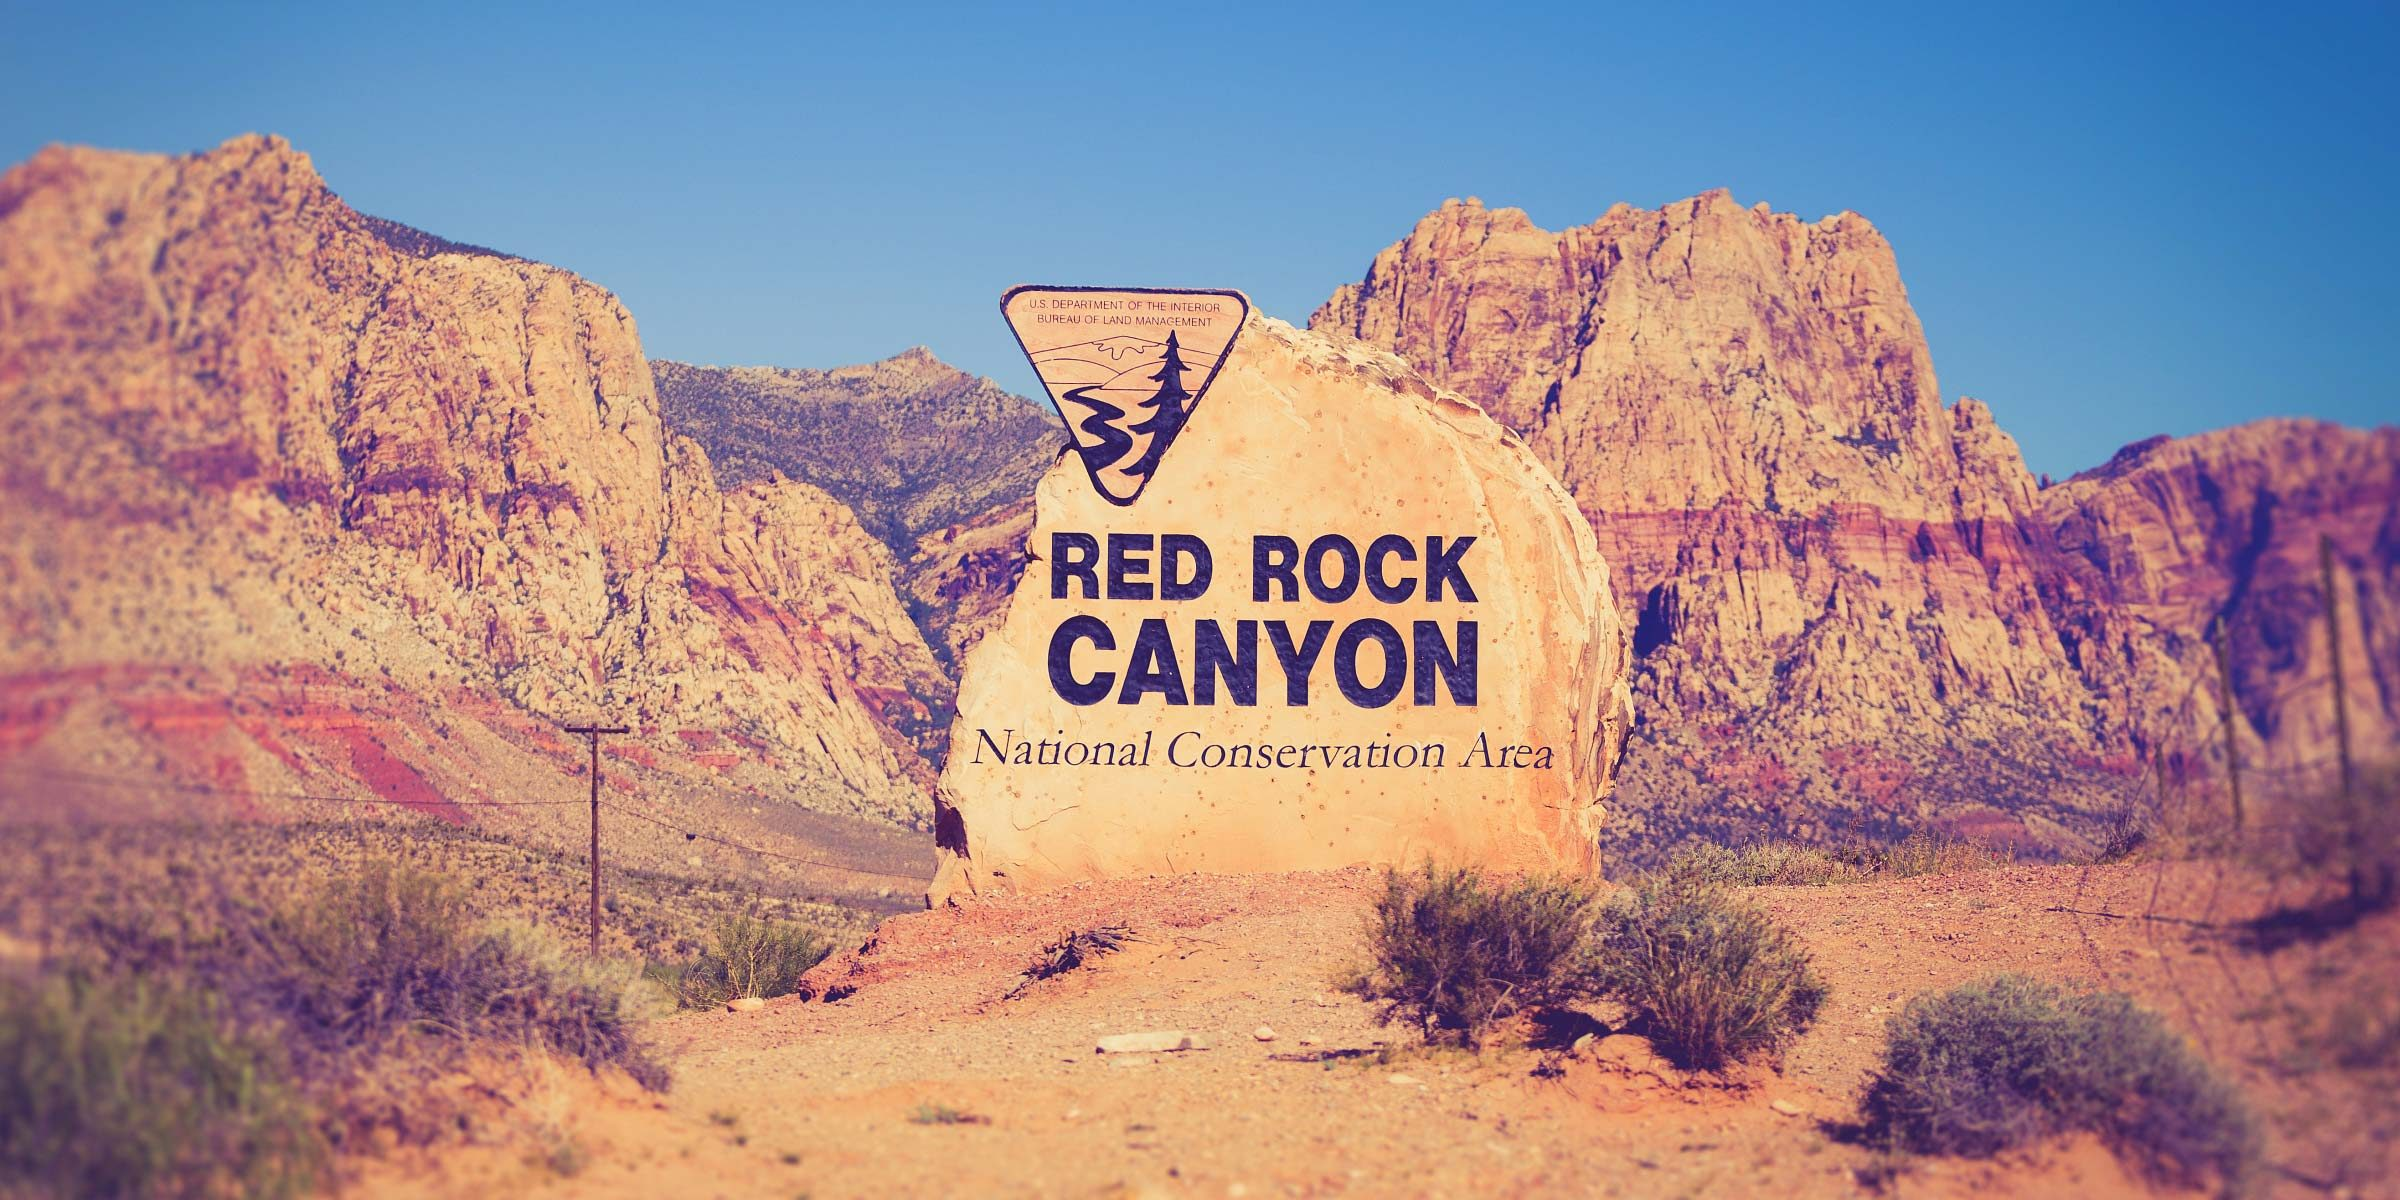 Der Red Rock Canyon in Las Vegas